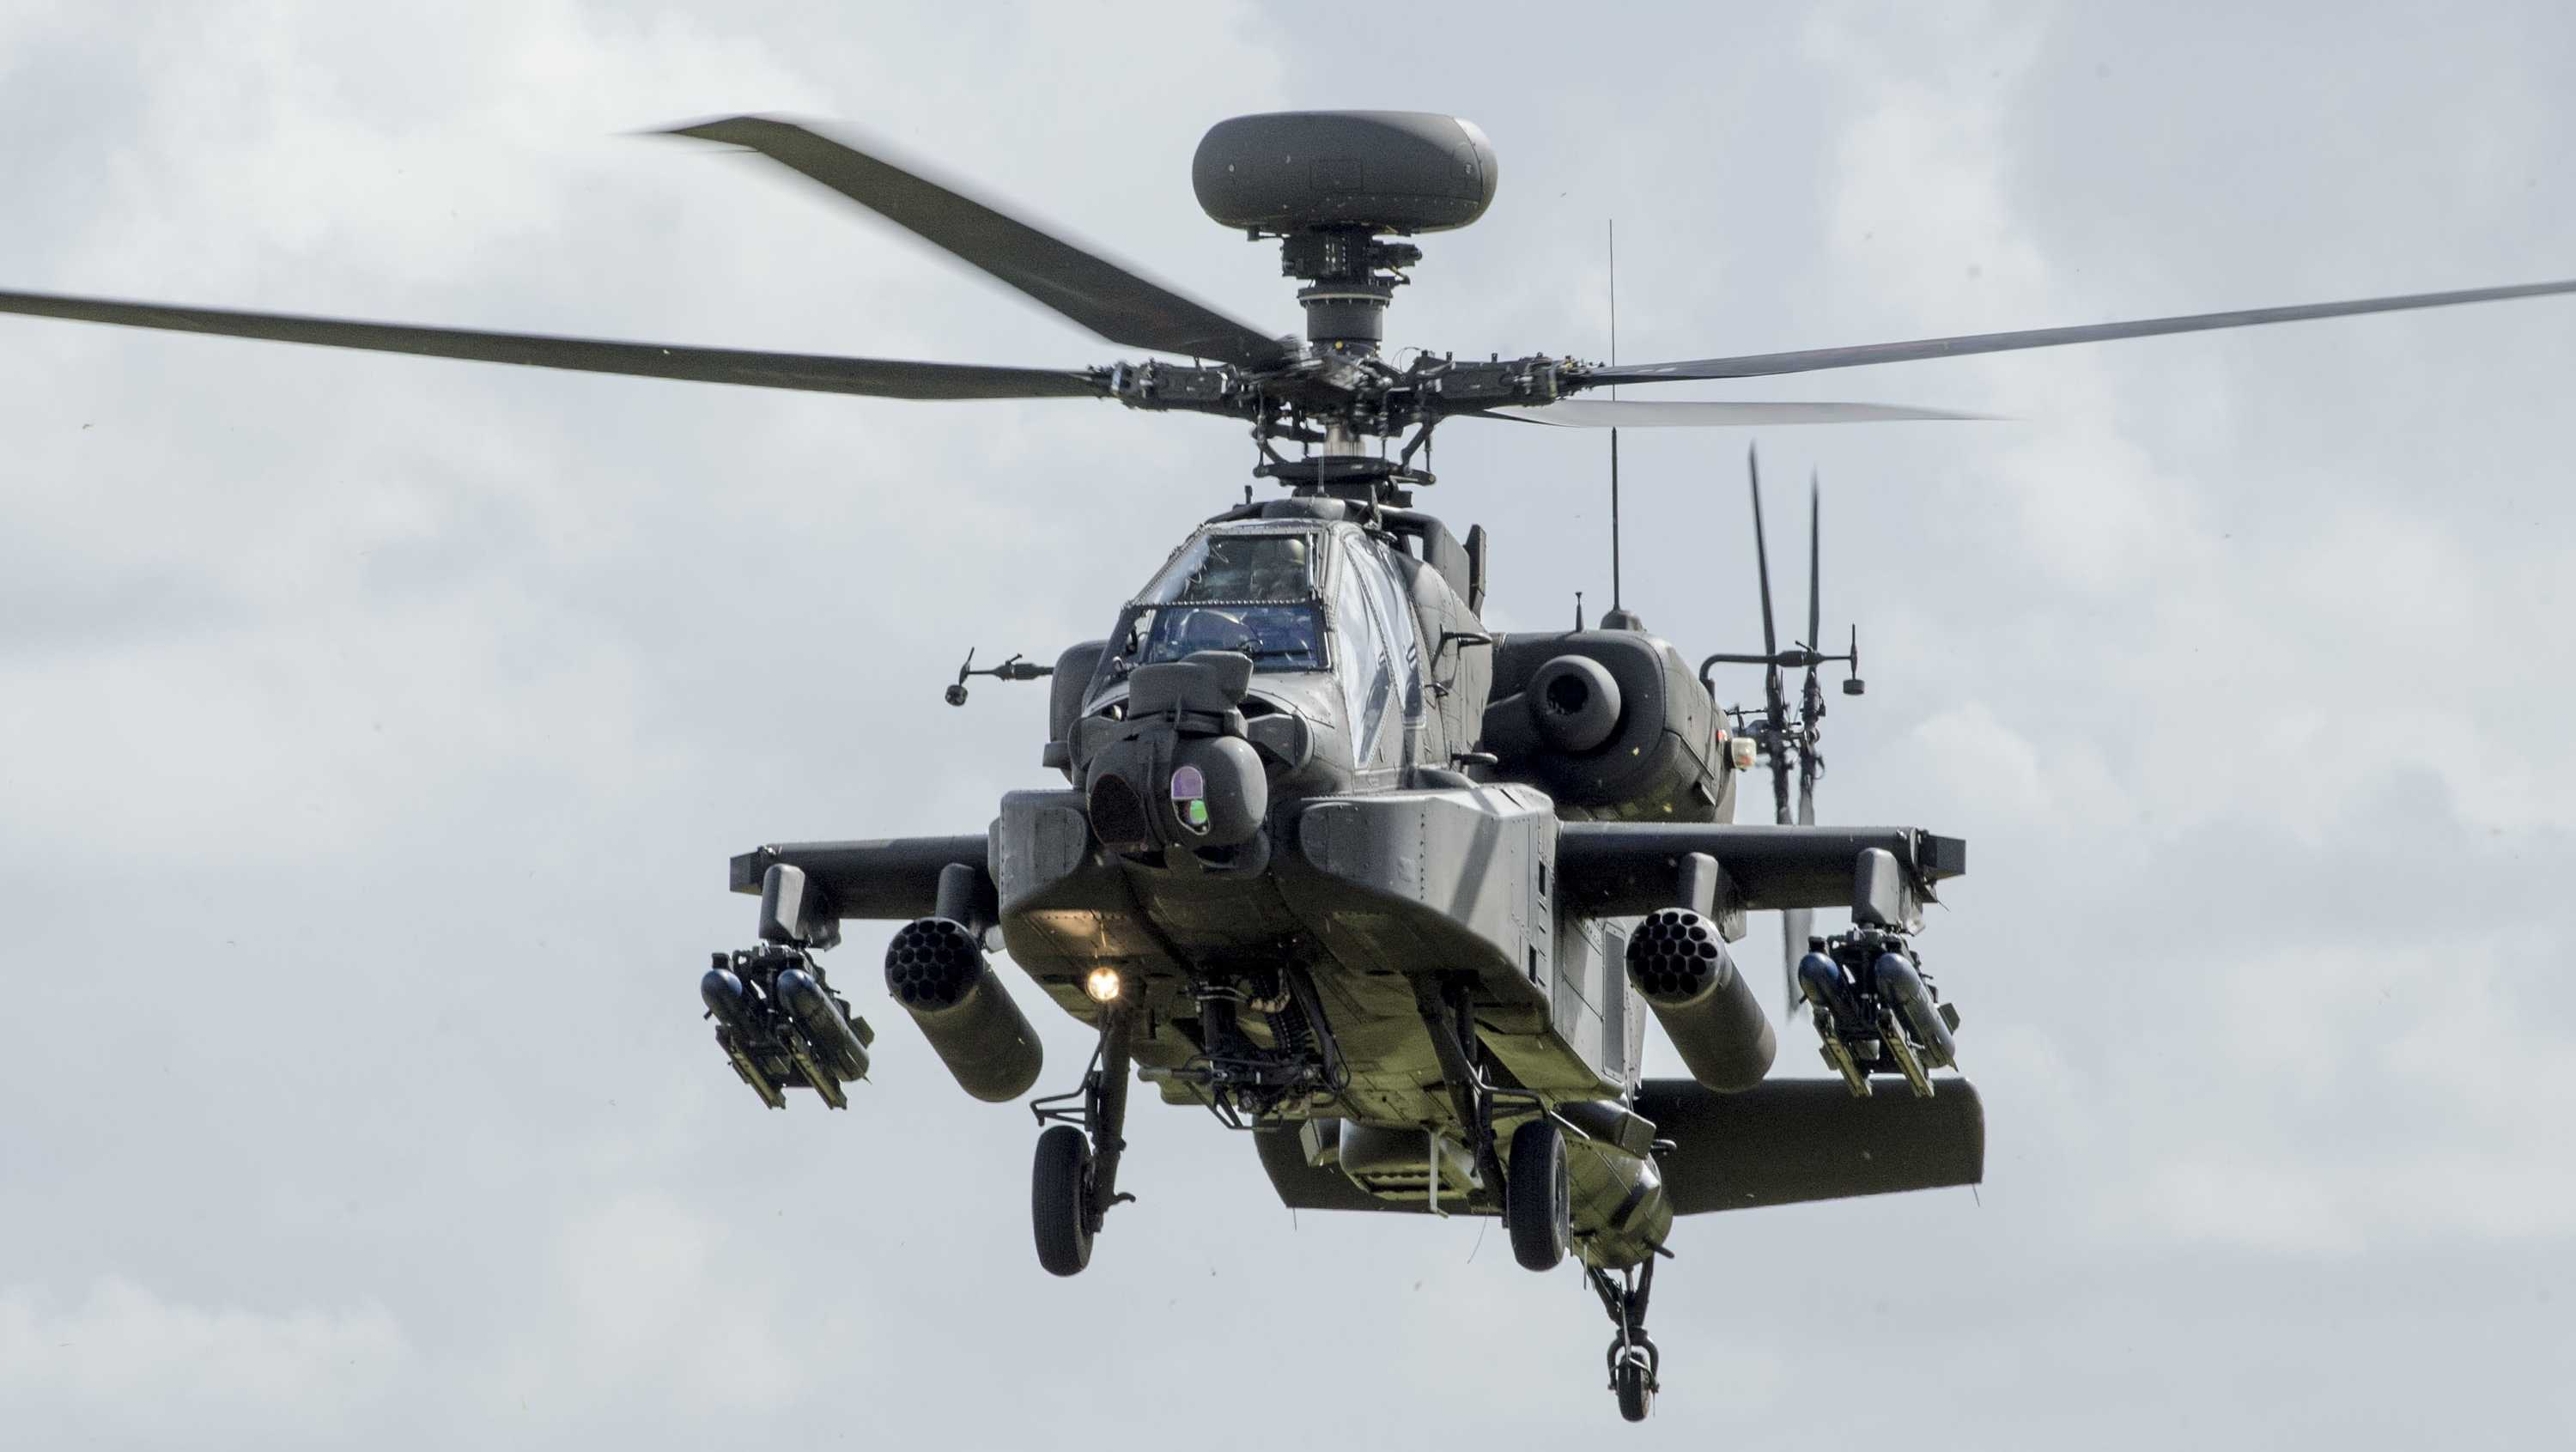 In this file photo, an Apache Helicopter performs a flypast at theMuseum of Army Flying on March 16, 2018 in Stockbridge, England.